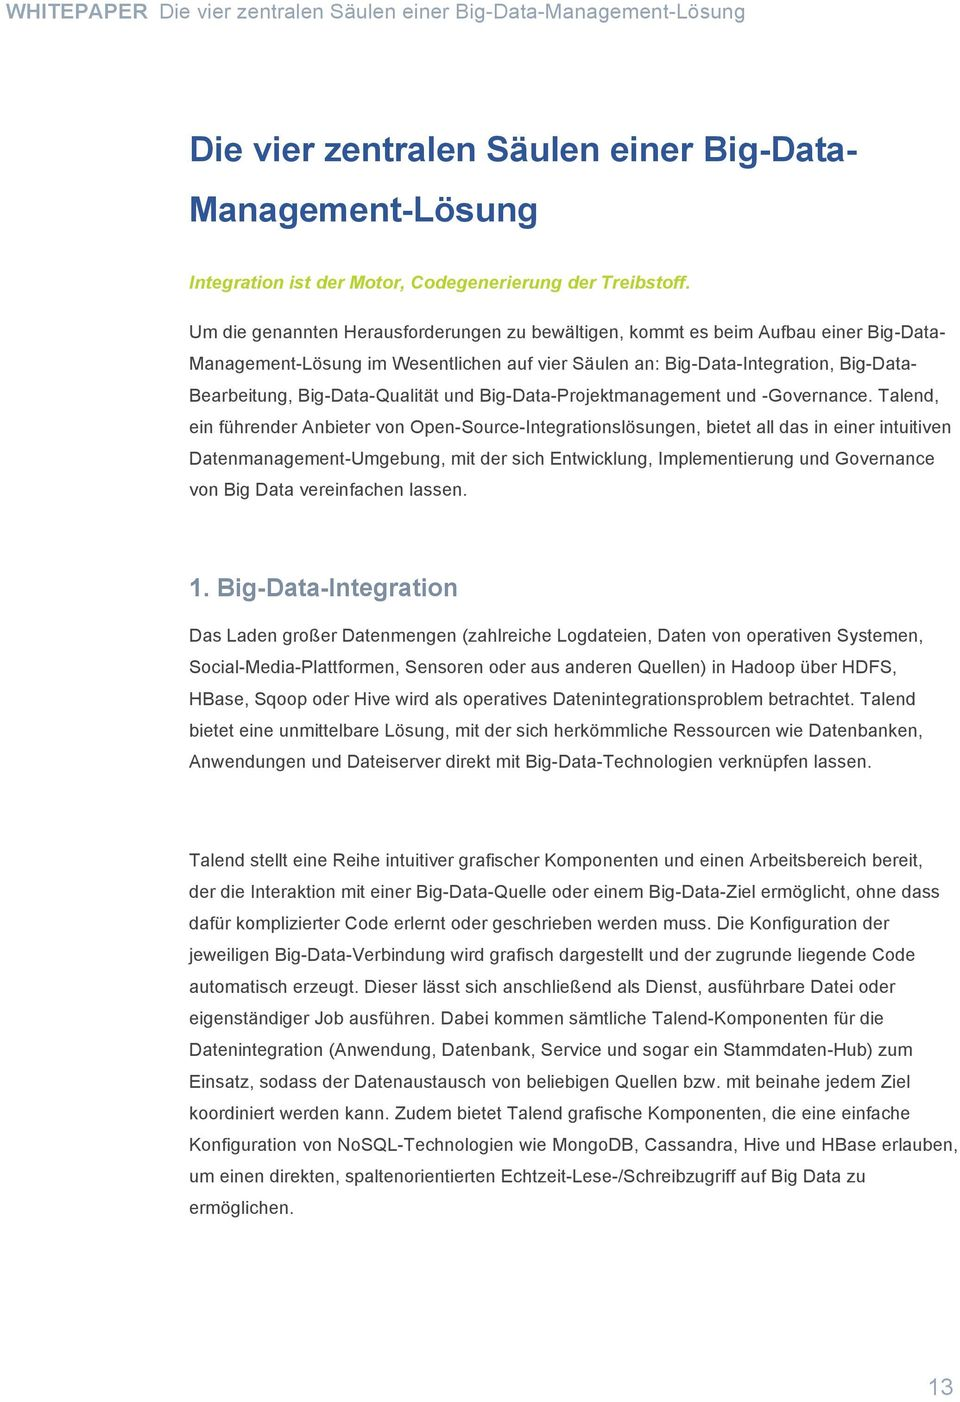 Big-Data-Qualität und Big-Data-Projektmanagement und -Governance.